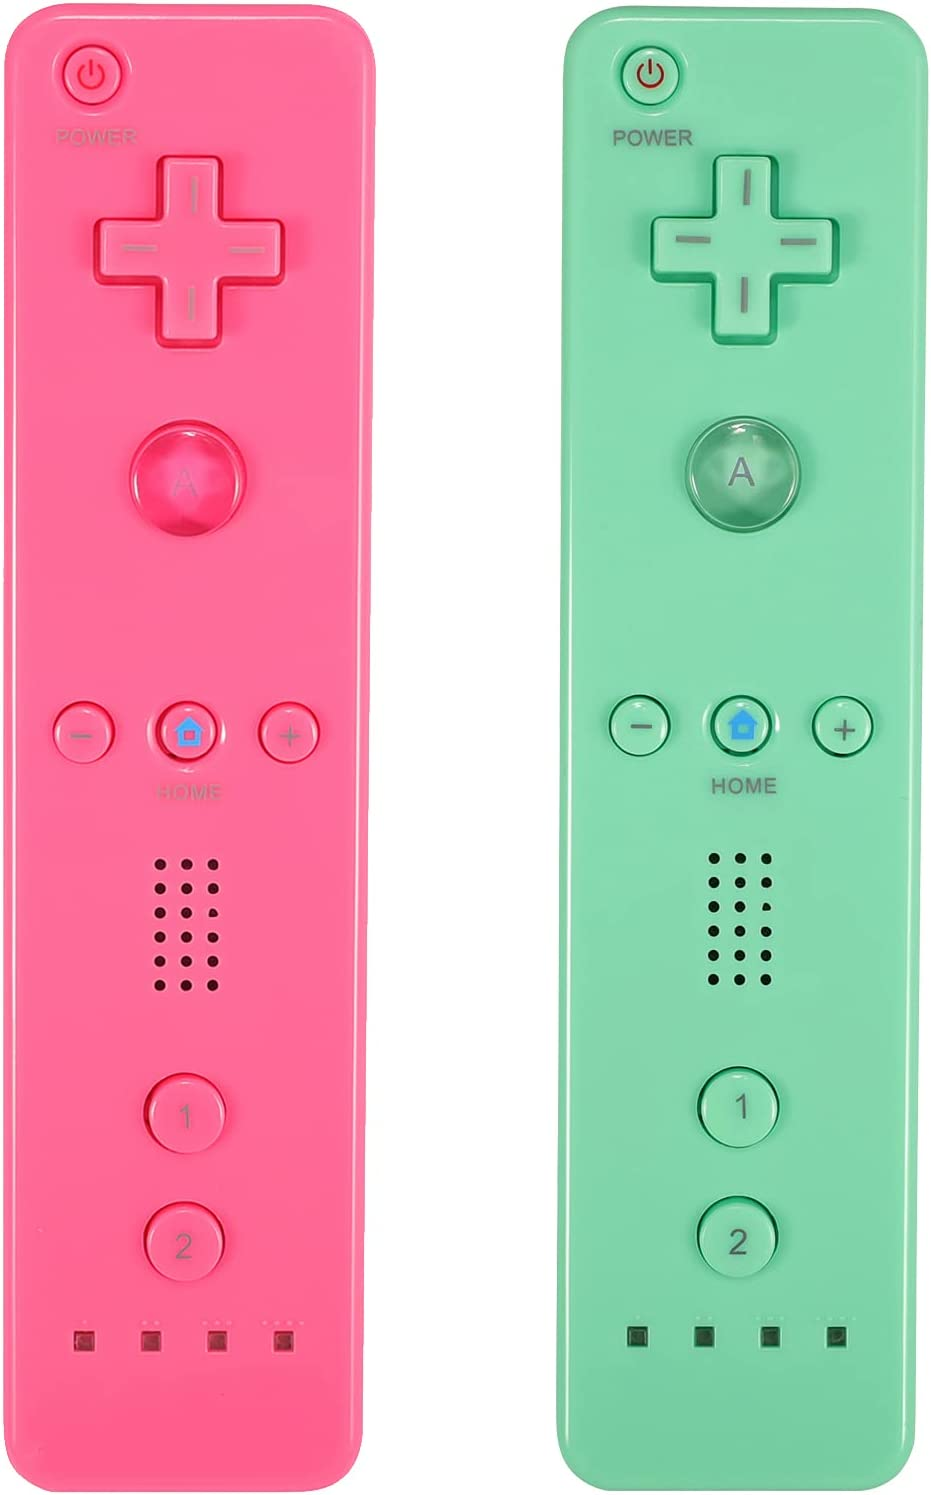 Yosikr Wireless Remote Controller for Wii Green Factory outlet - Cash special price Packs 2 U